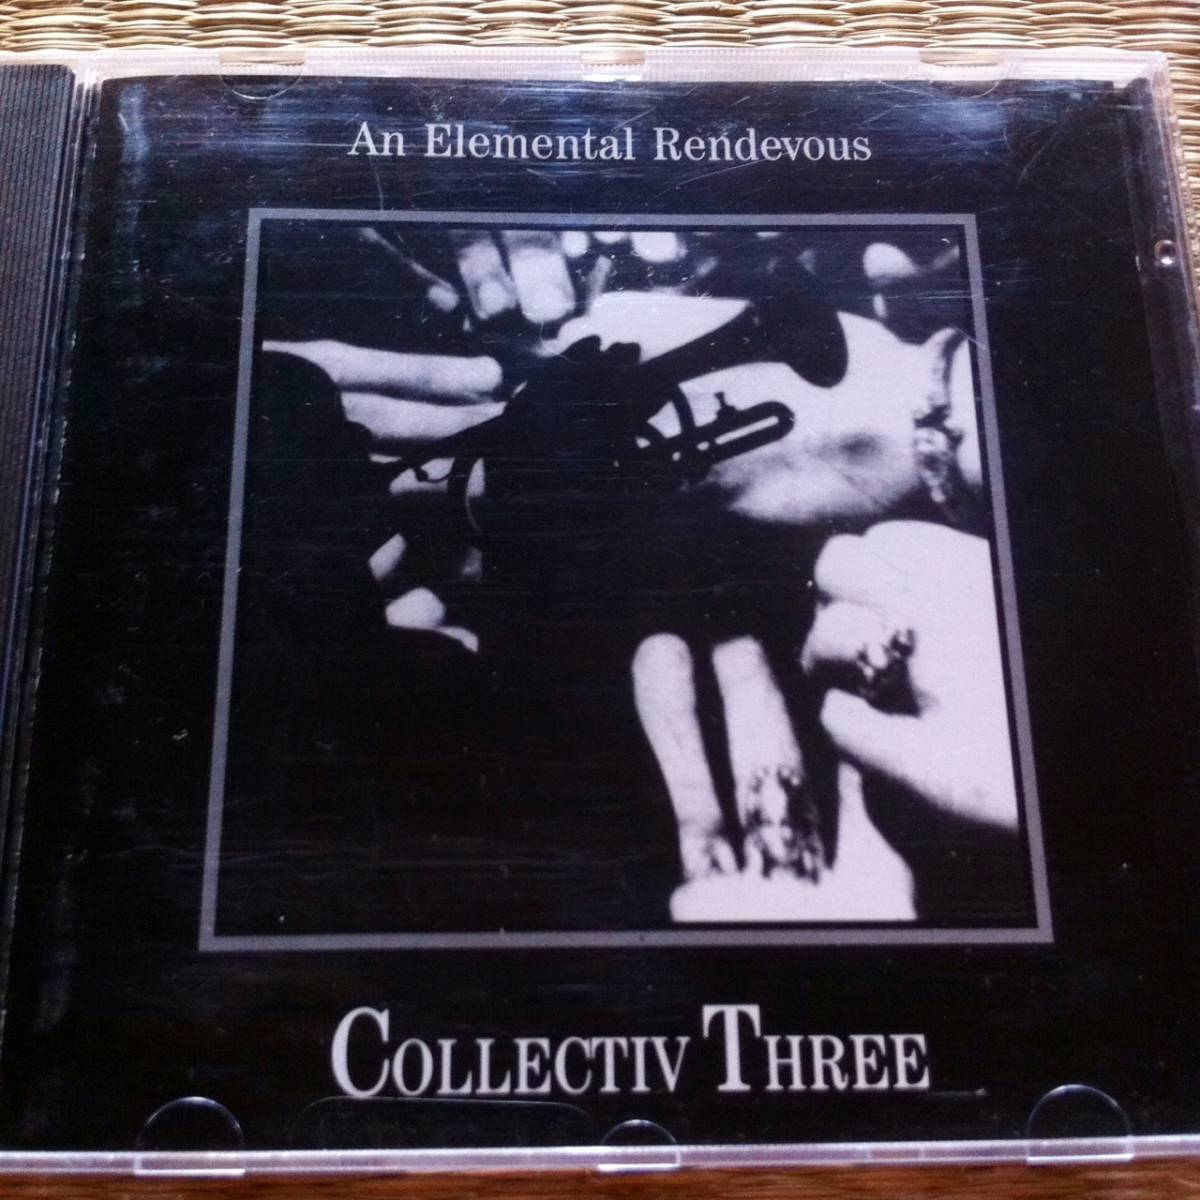 『Chris & Cosey / Collective Three: An Element Rendevous』CD 送料無料 Throbbing Gristle, Coil, Psychic Tv